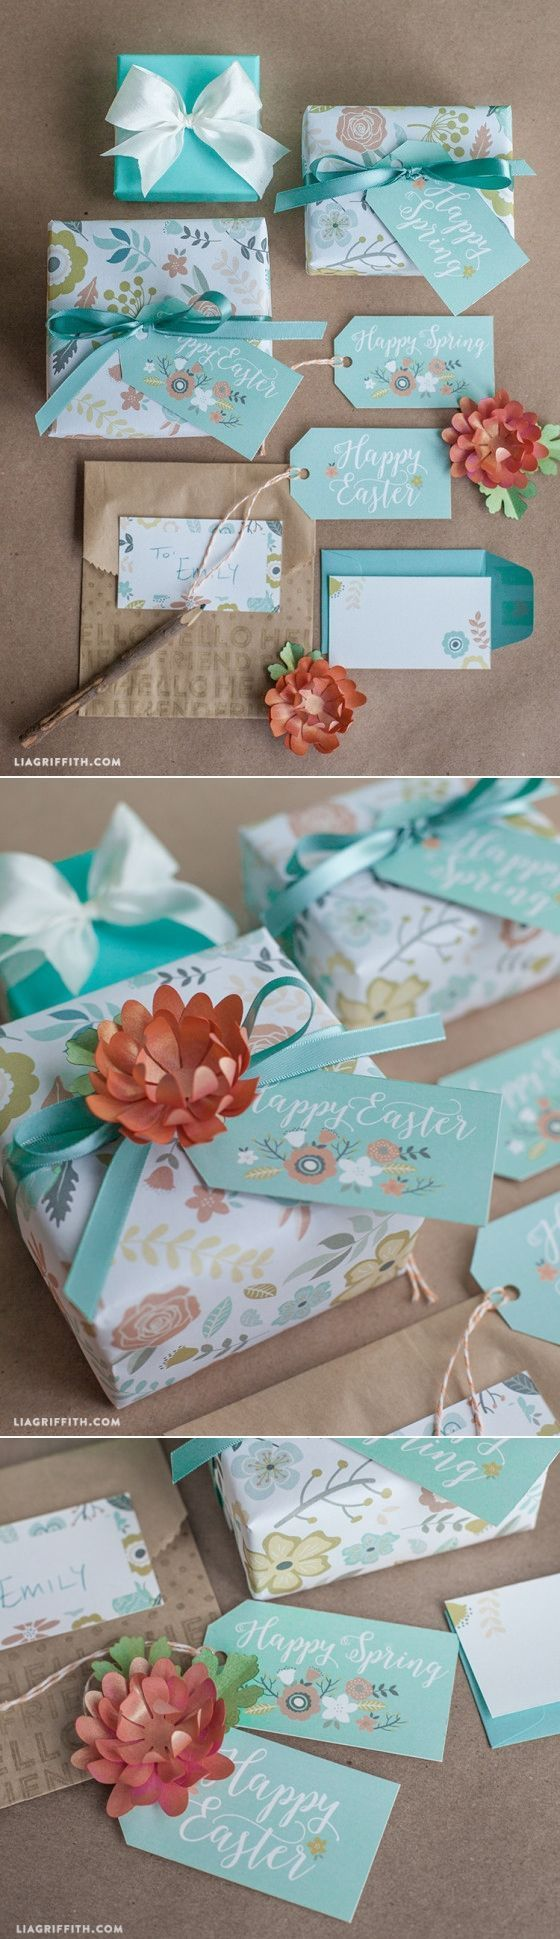 229 best beautiful gift tags images on pinterest birthday favors printable gift wrap and tags for spring easter negle Gallery